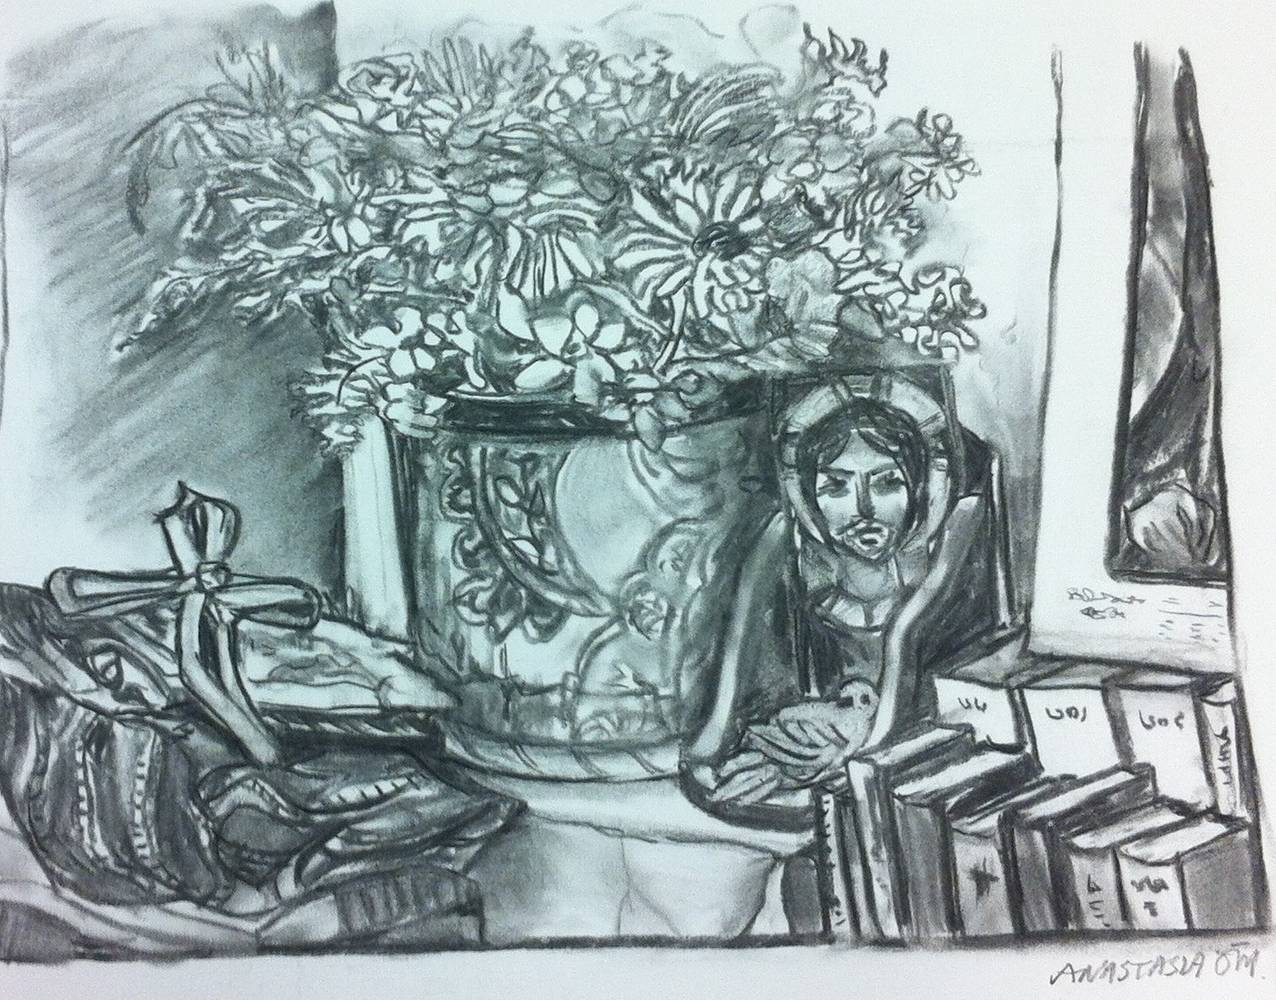 Drawing Corner of My Room by Anastasia O'melveny